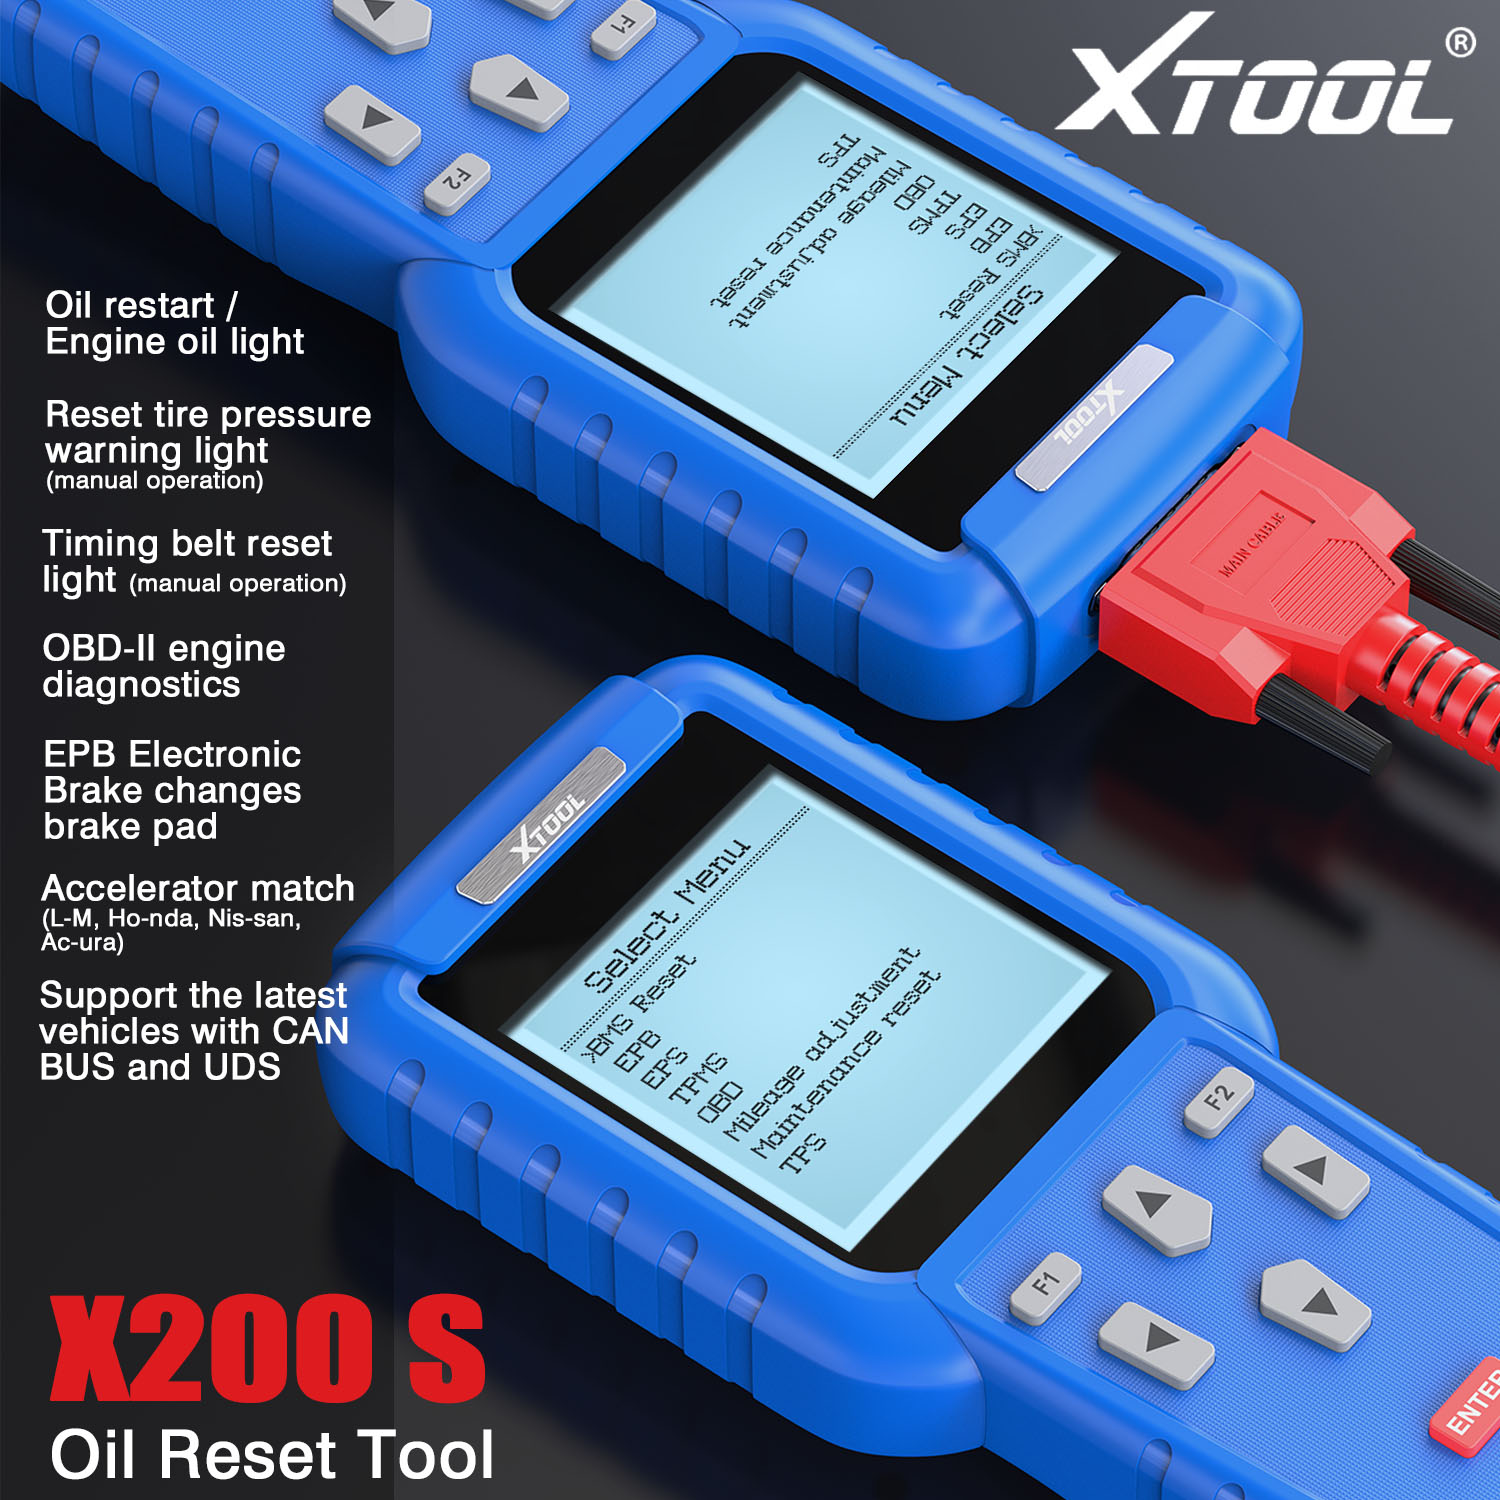 XTOOL X-200 Oil Reset Tool Free Shipping By DHL